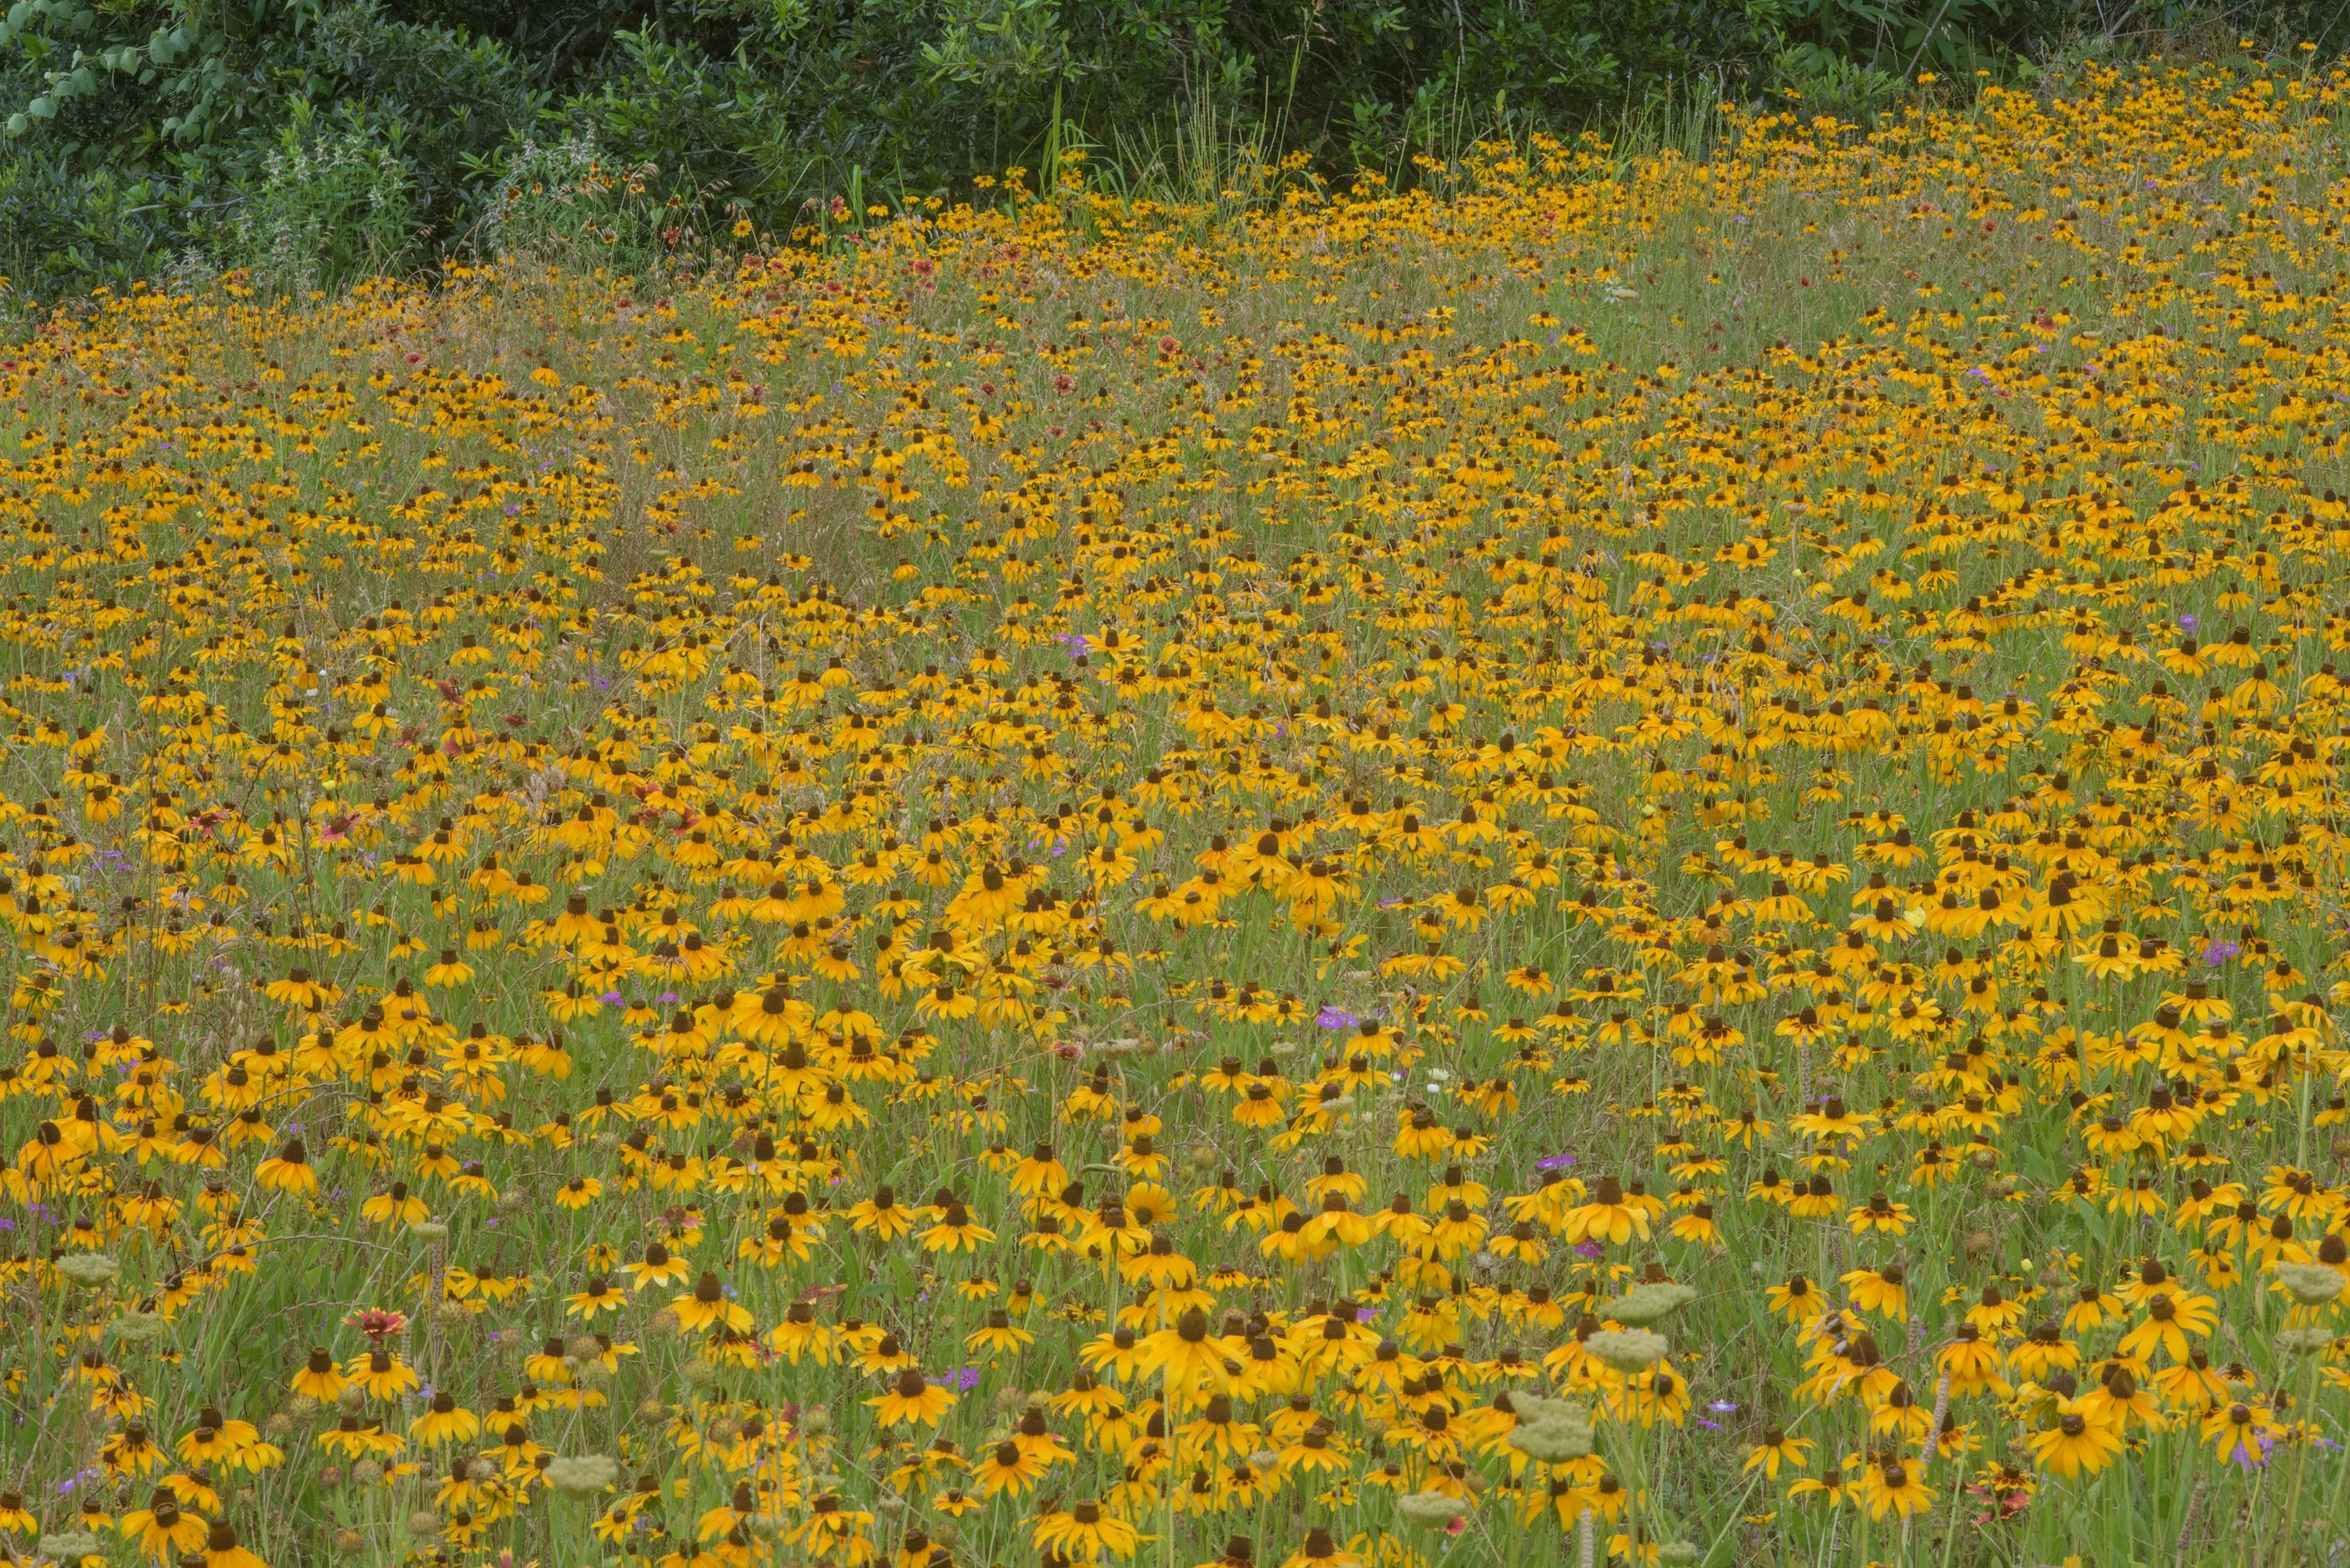 Field of black eyed susan flowers (Rudbeckia...State Historic Site. Washington, Texas